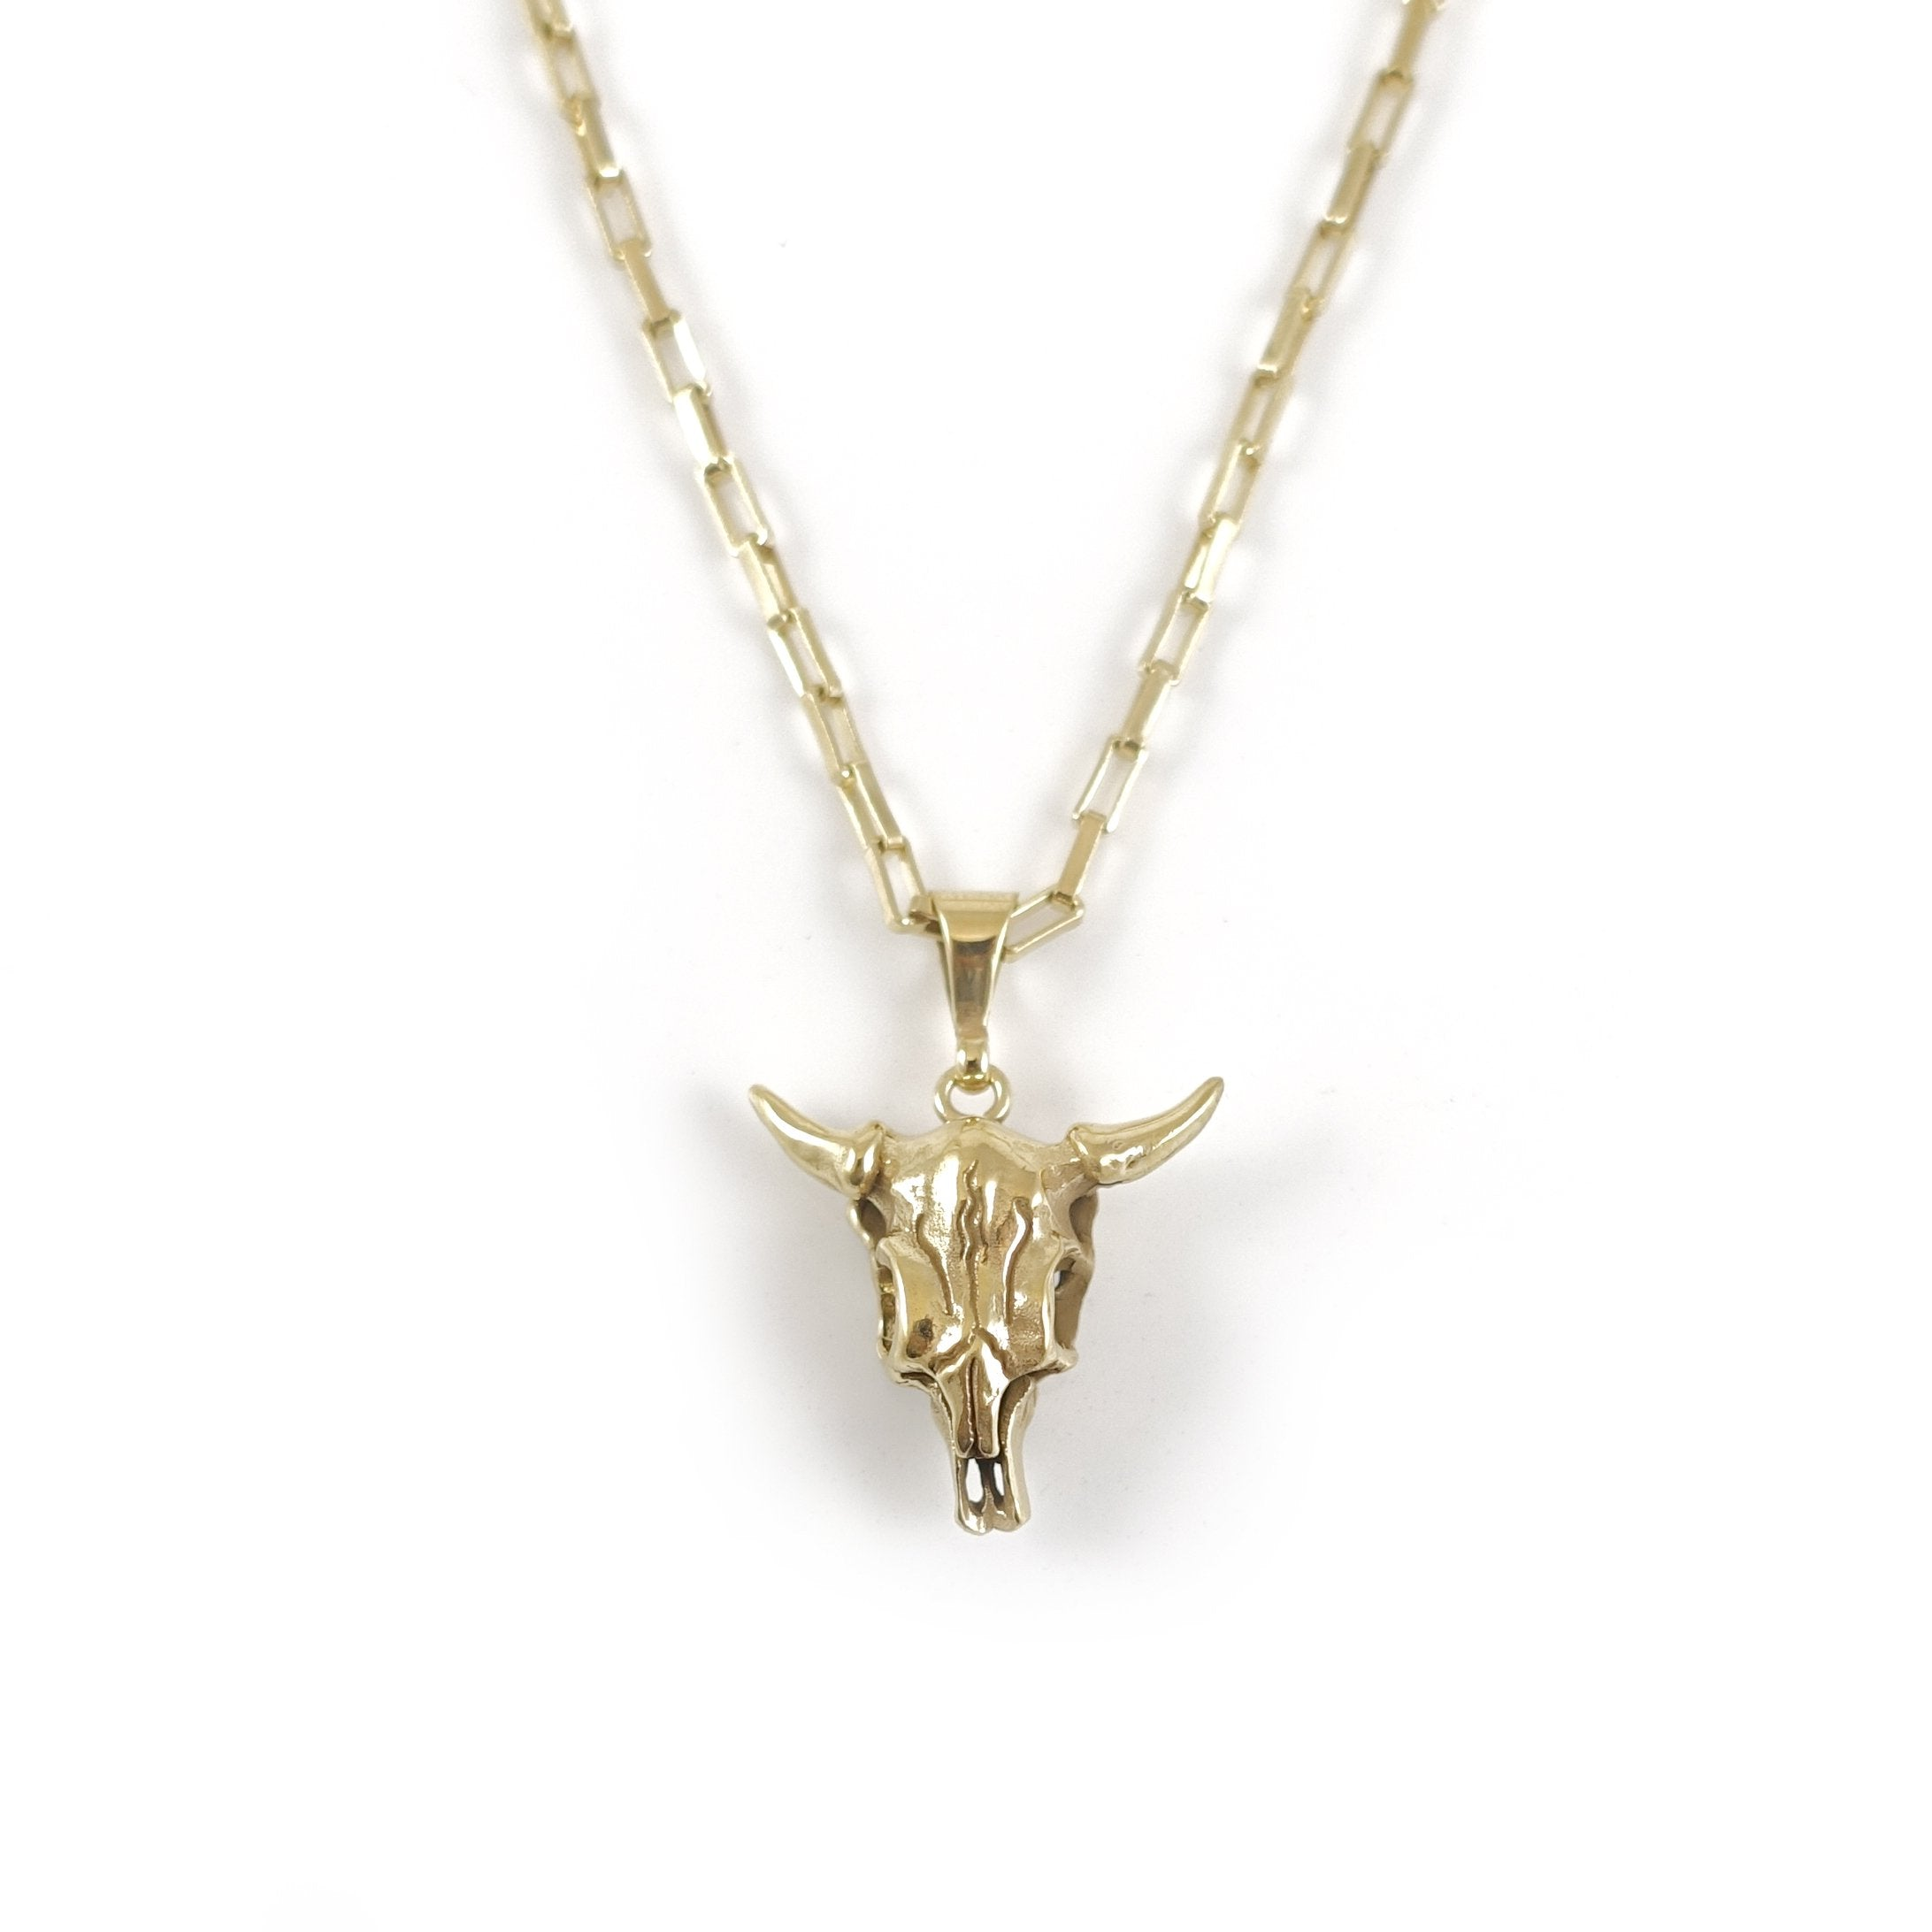 Nick Von K - Cow skull necklace